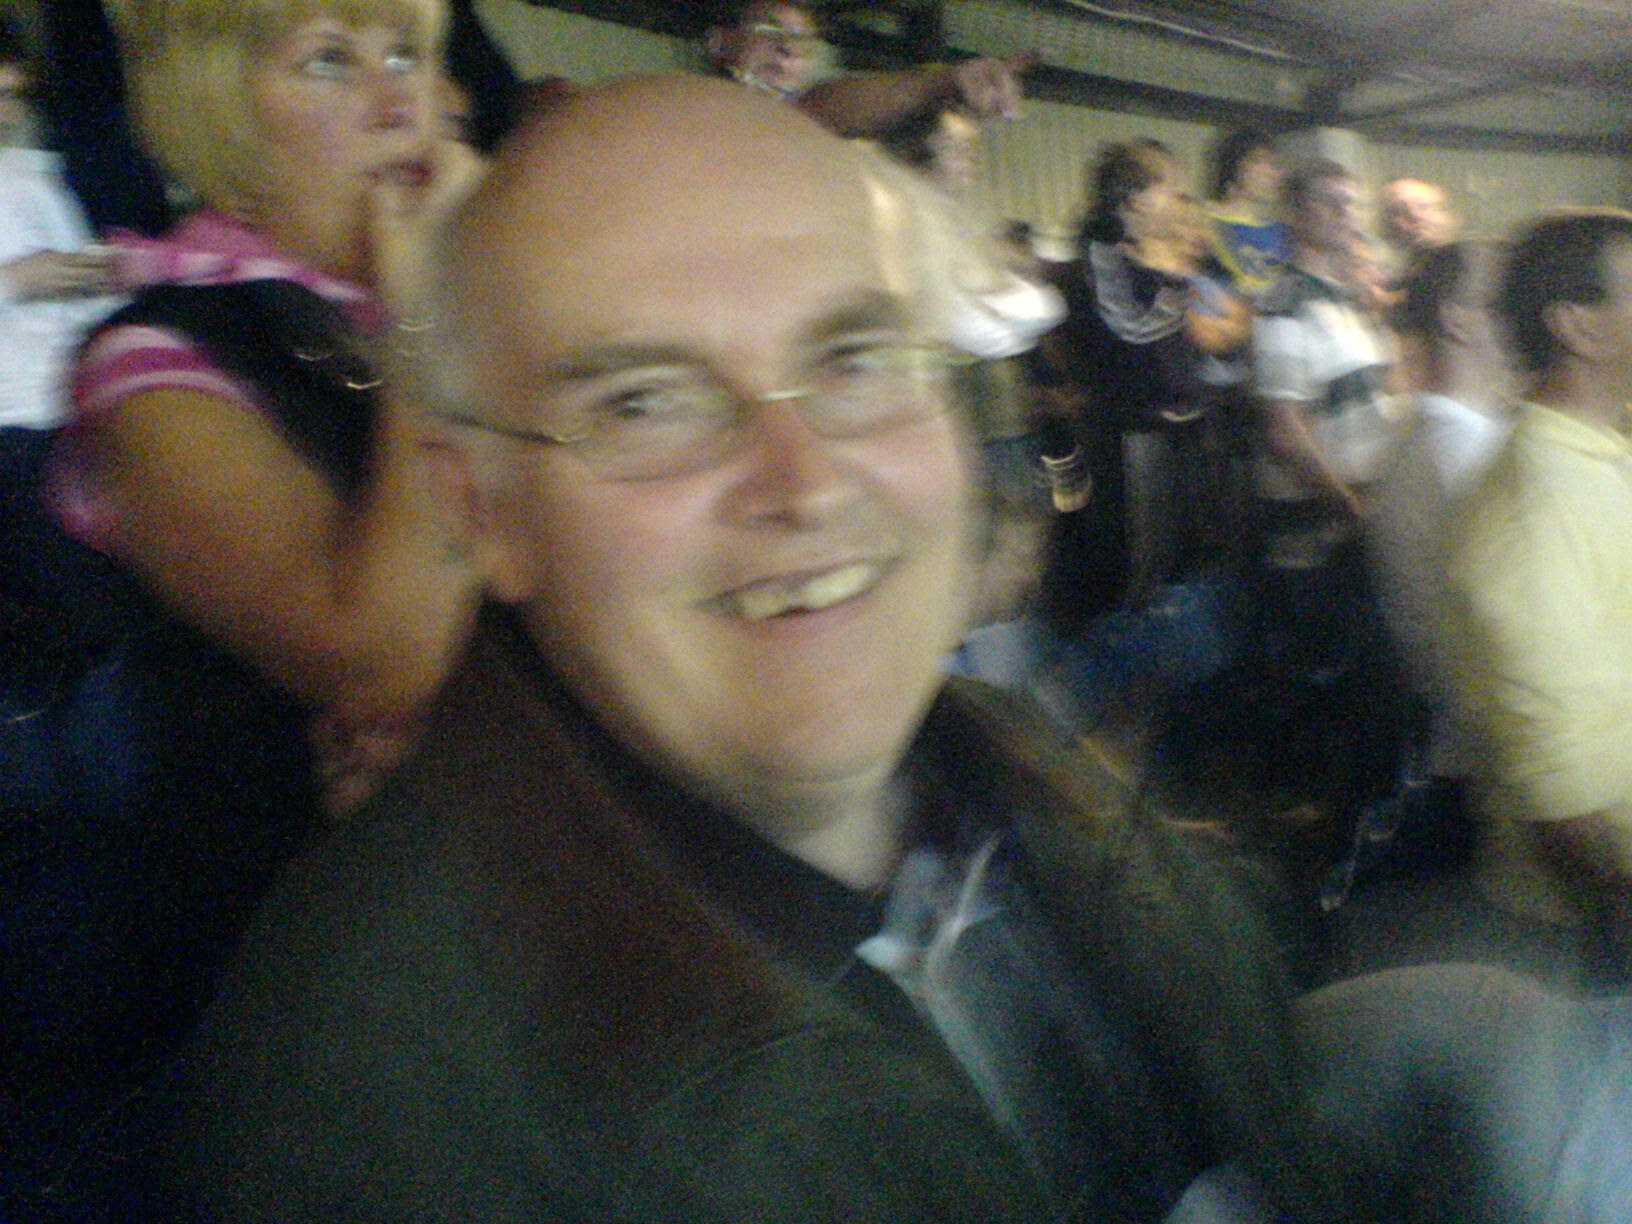 Dad at Elland Road for the Playoff semi final in 2006